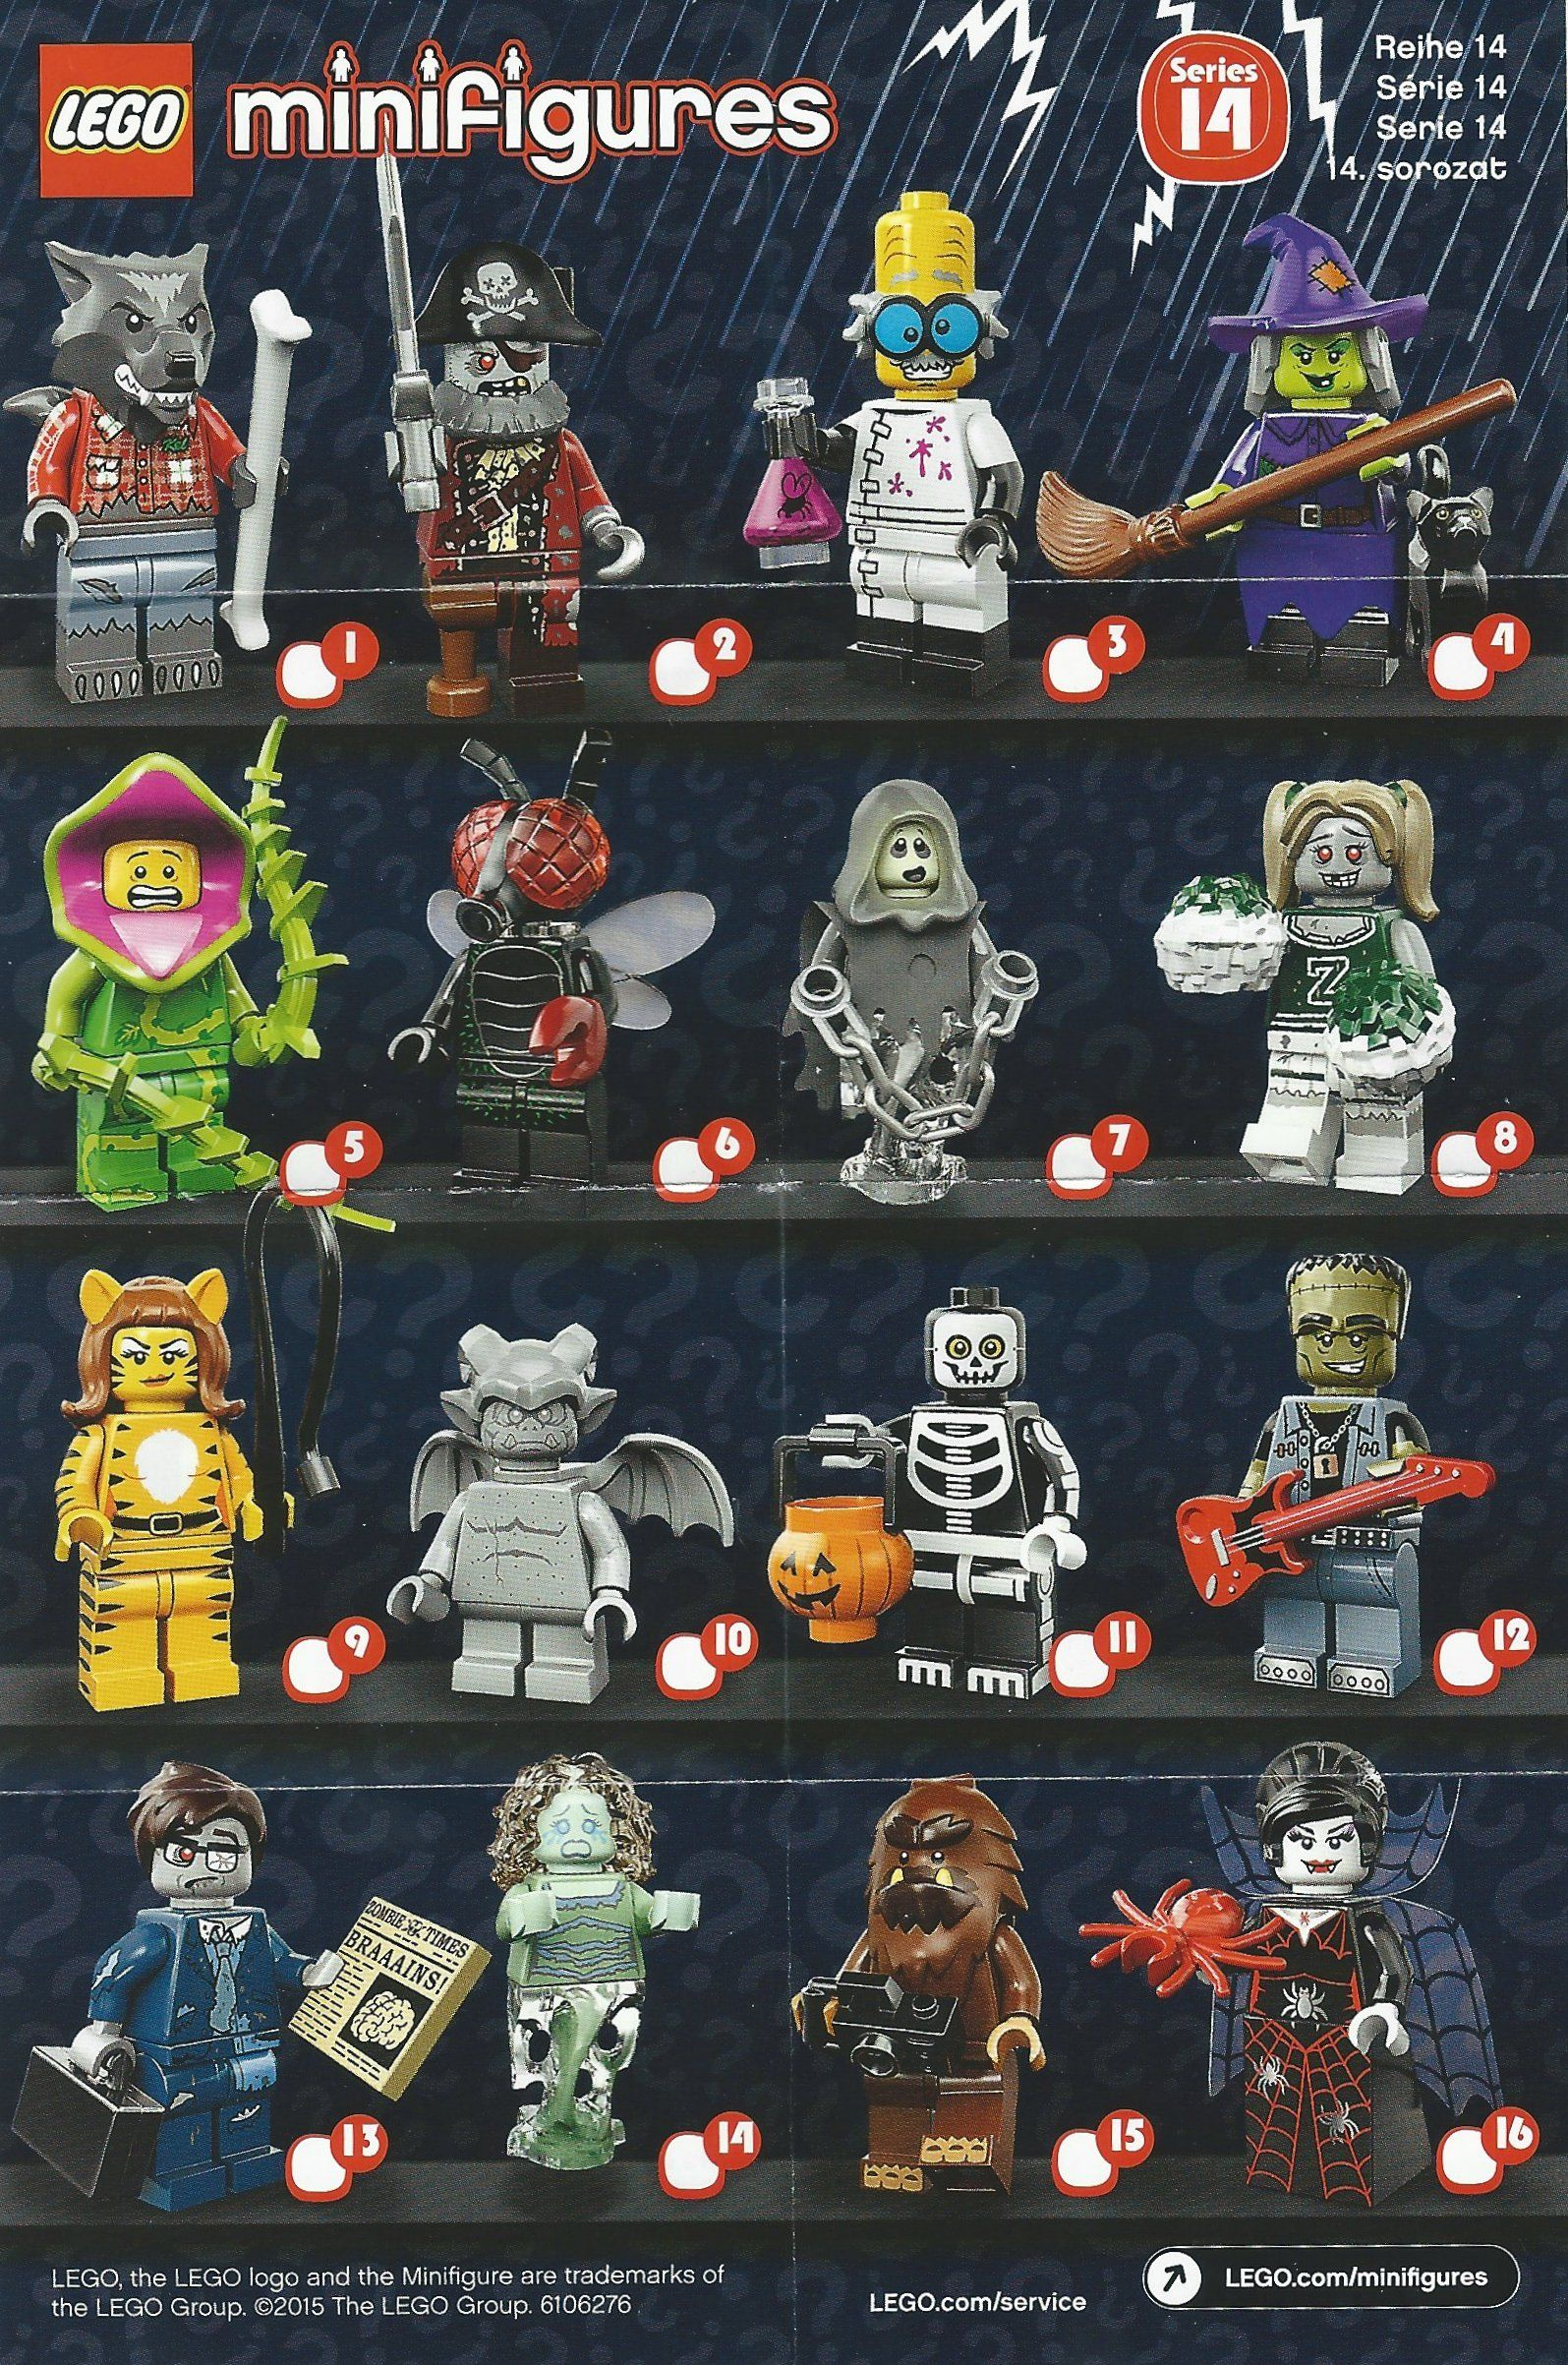 LEGO Minifigures Series 14 Character Checklist | Lego ...